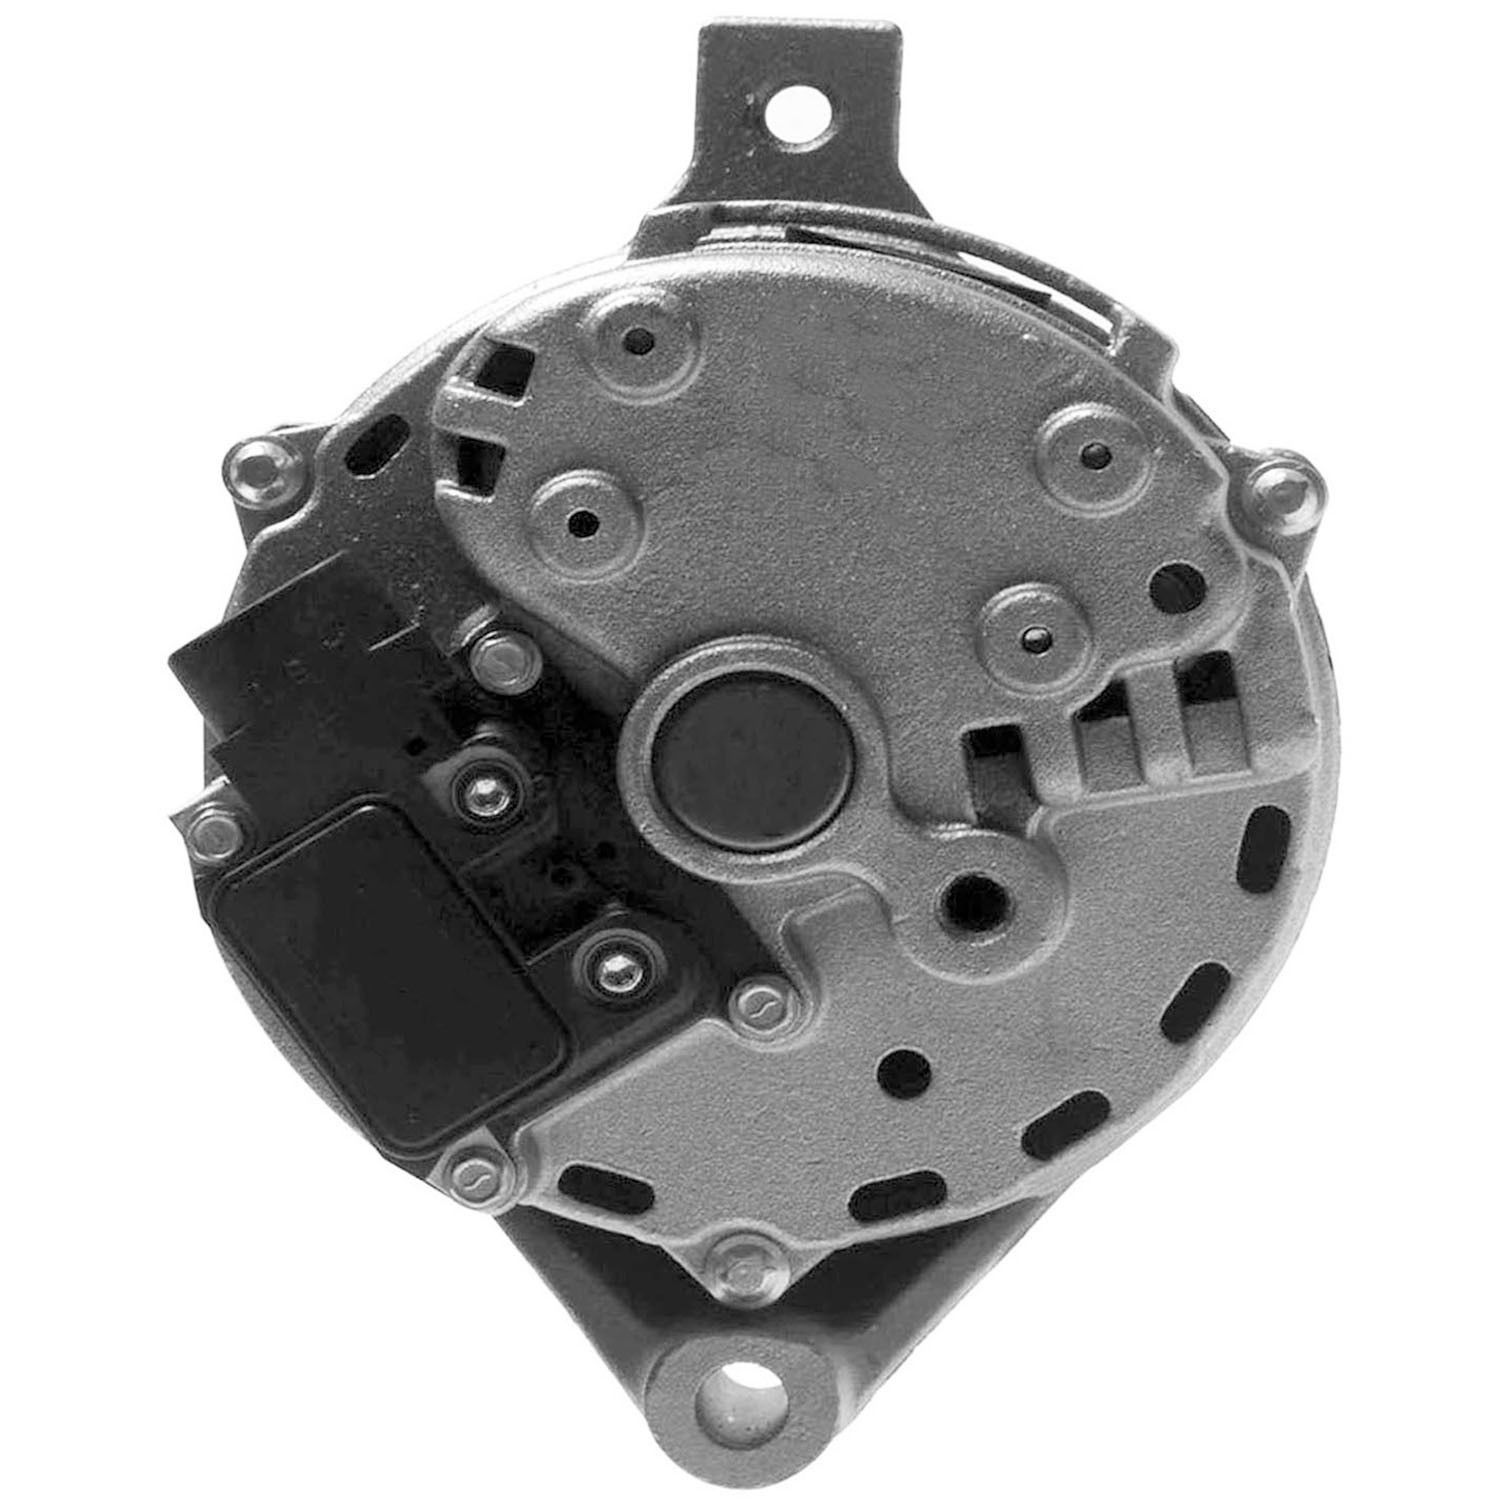 Ford E 250 Econoline Alternator Replacement Bosch Denso Mpa Internal Regulator 1986 8 Cyl 50l 210 5171 With Solution